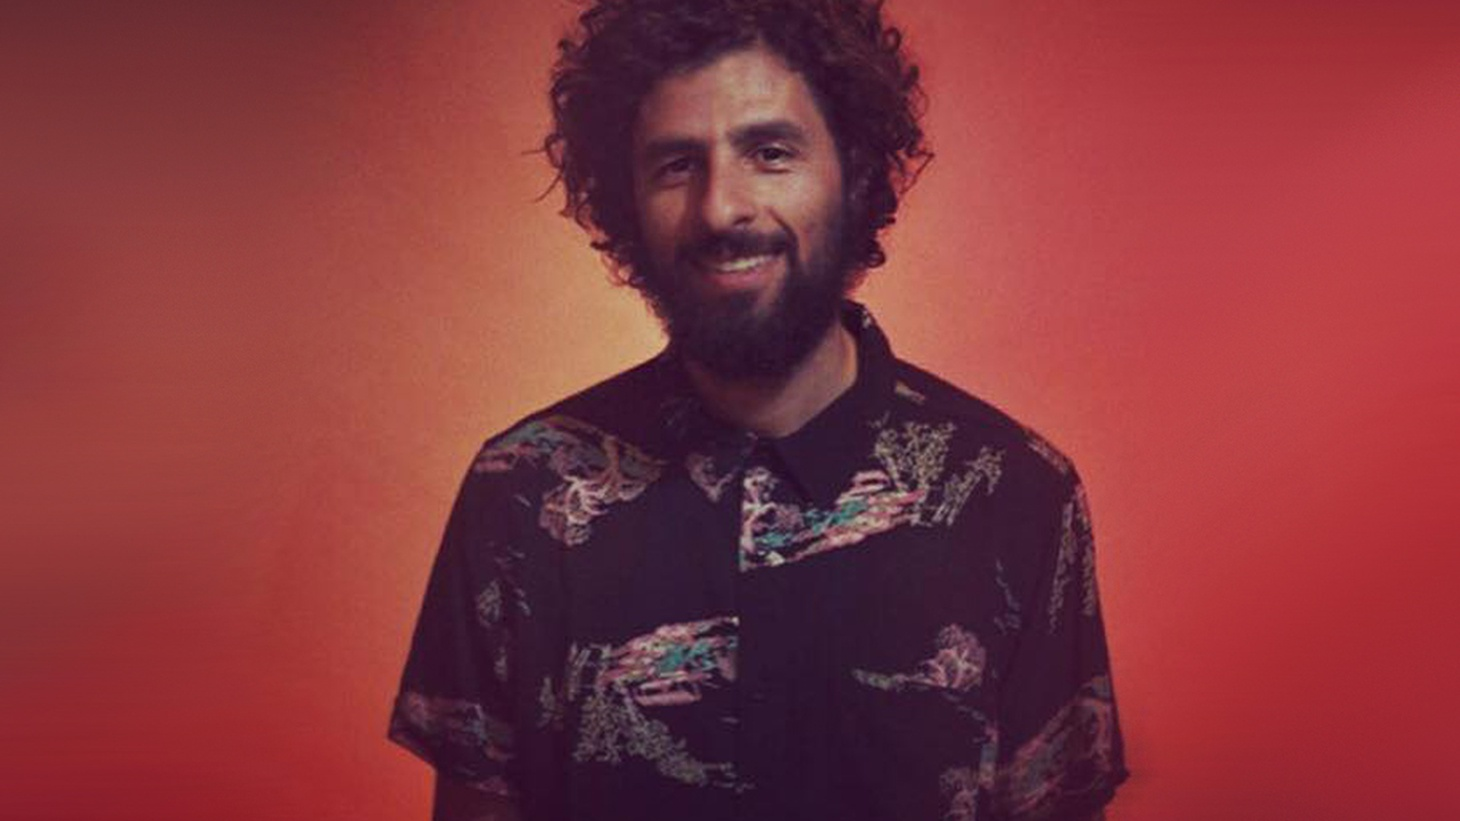 José González keeps himself busy. The past few years have been focused on the band project Junip, with frequent collaborations with Zero 7, and contributions to other projects such as The Secret Life of Walter Mitty soundtrack and the Red Hot tribute to Arthur Russell. Here he performs music from his 2015 album, Vestiges & Claws.